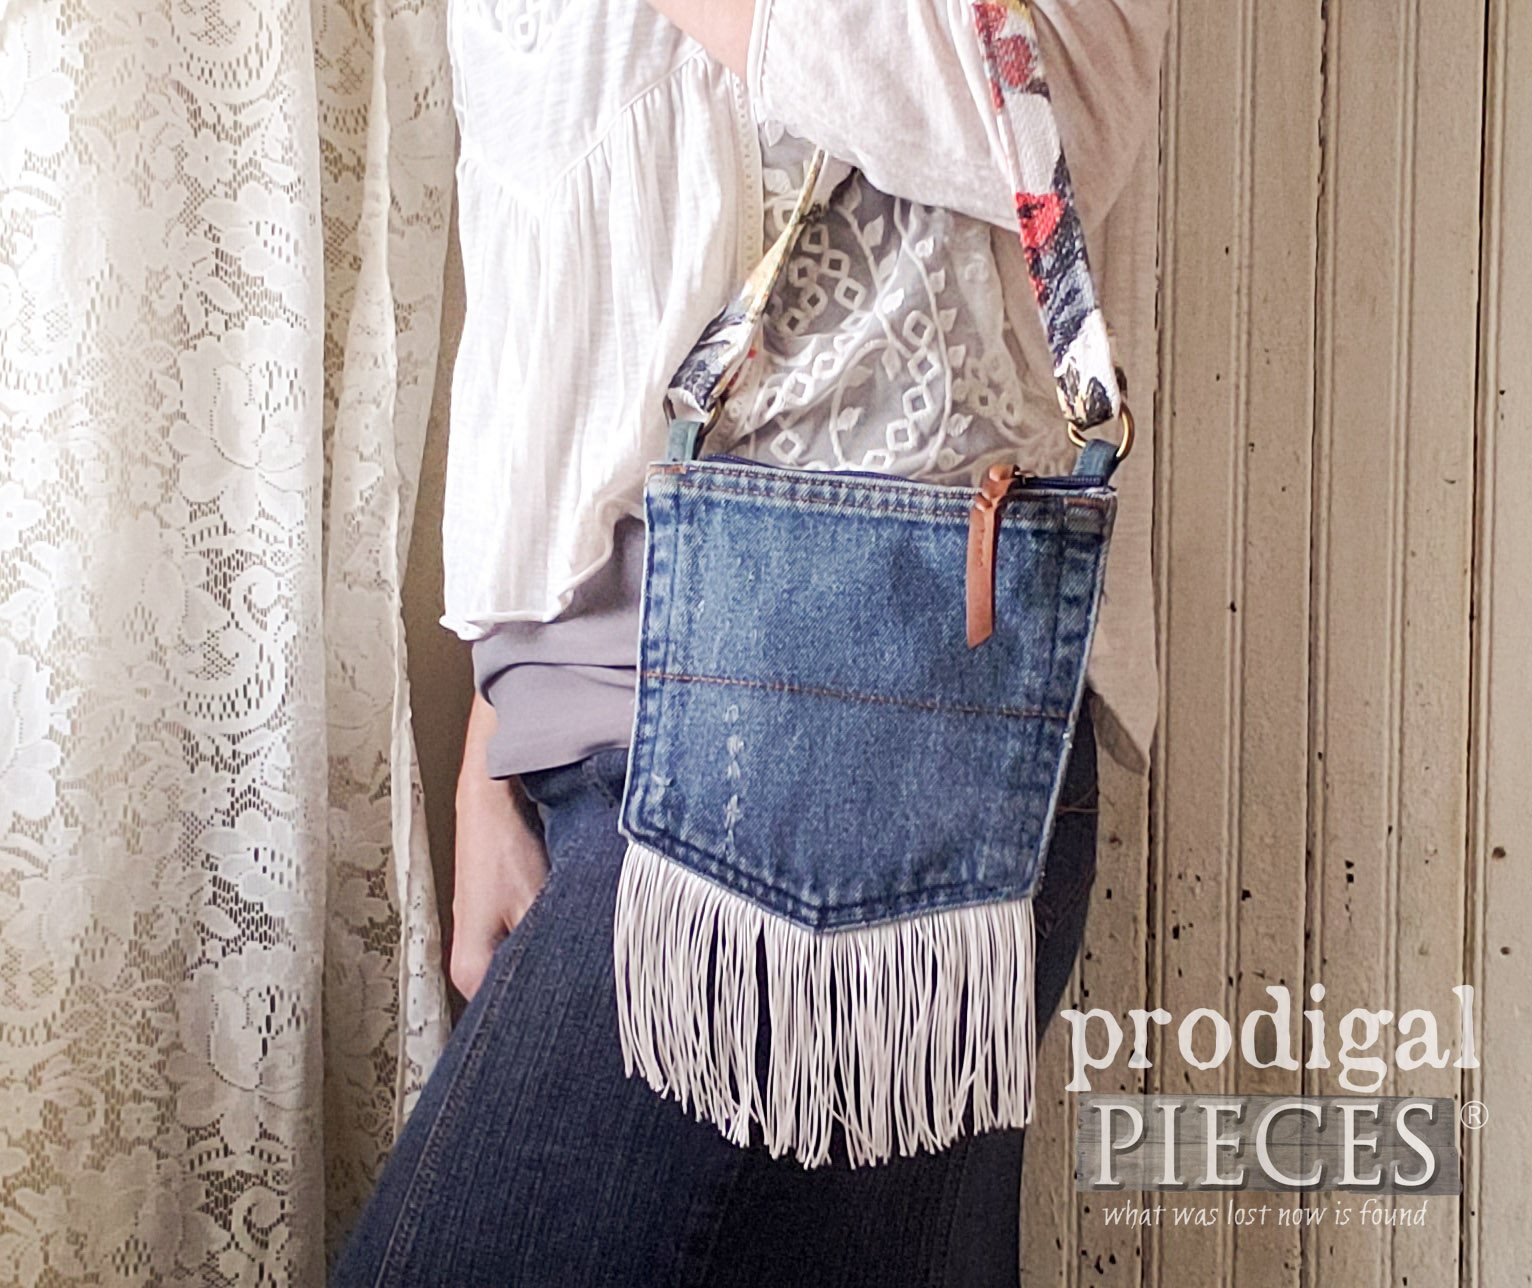 Dark Denim Handbag Made from Jean Pockets with Video Tutorial by Larissa of Prodigal Pieces | prodigalpieces.com #prodigalpieces #handmade #fashion #style #women #purse #bag #boho #farmhouse